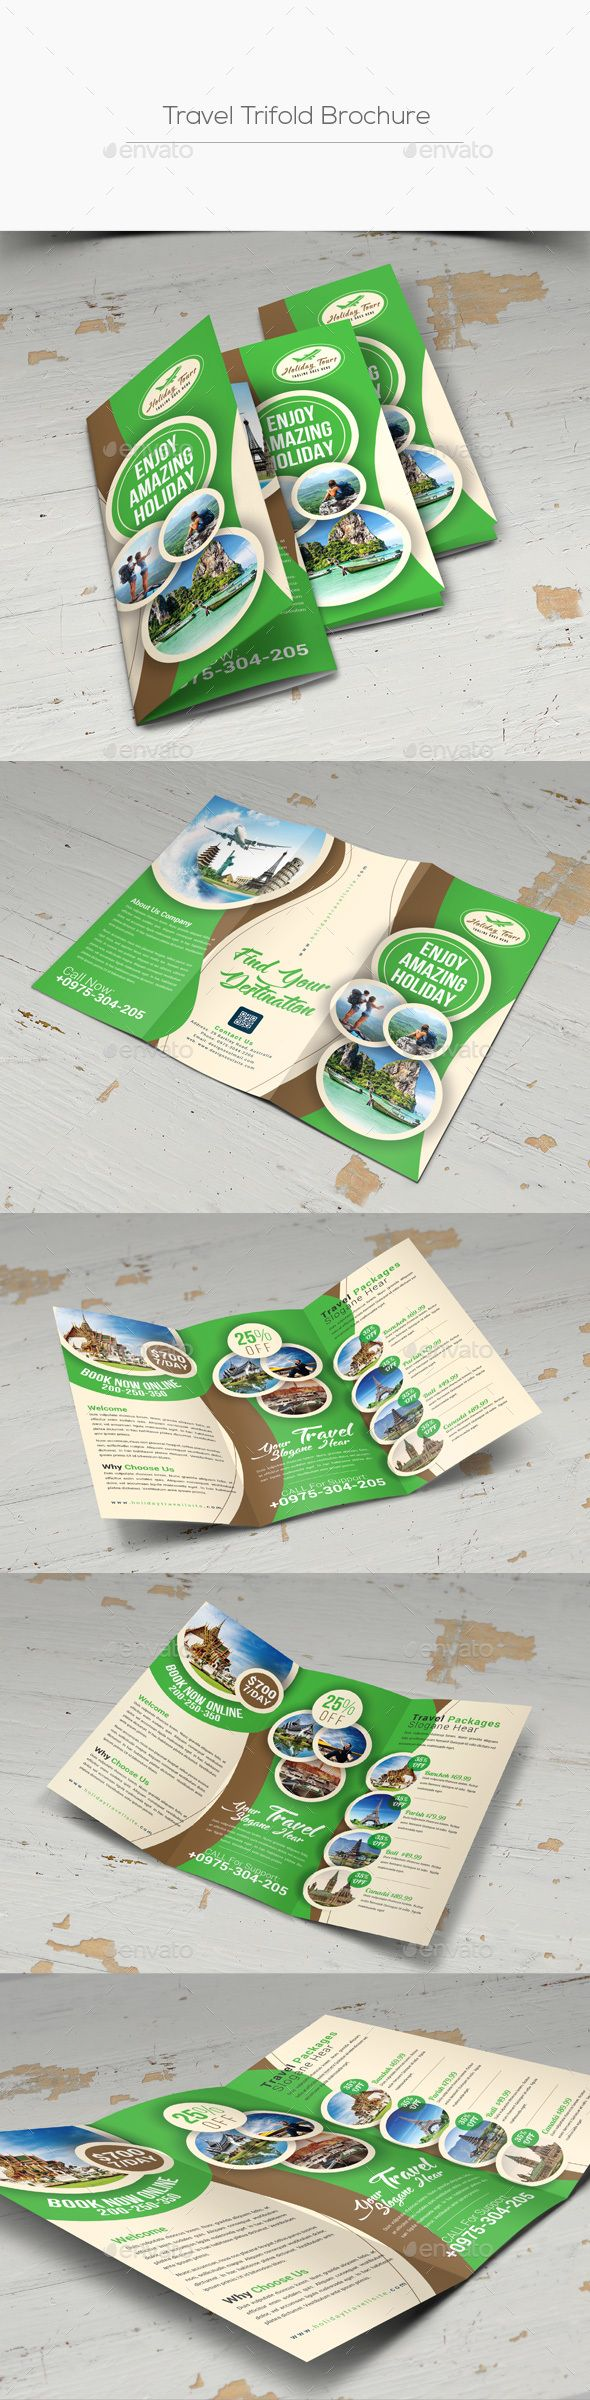 Travel Trifold Brochure #business #trifold brochure  • Download here → https://graphicriver.net/item/travel-trifold-brochure/21285326?ref=pxcr